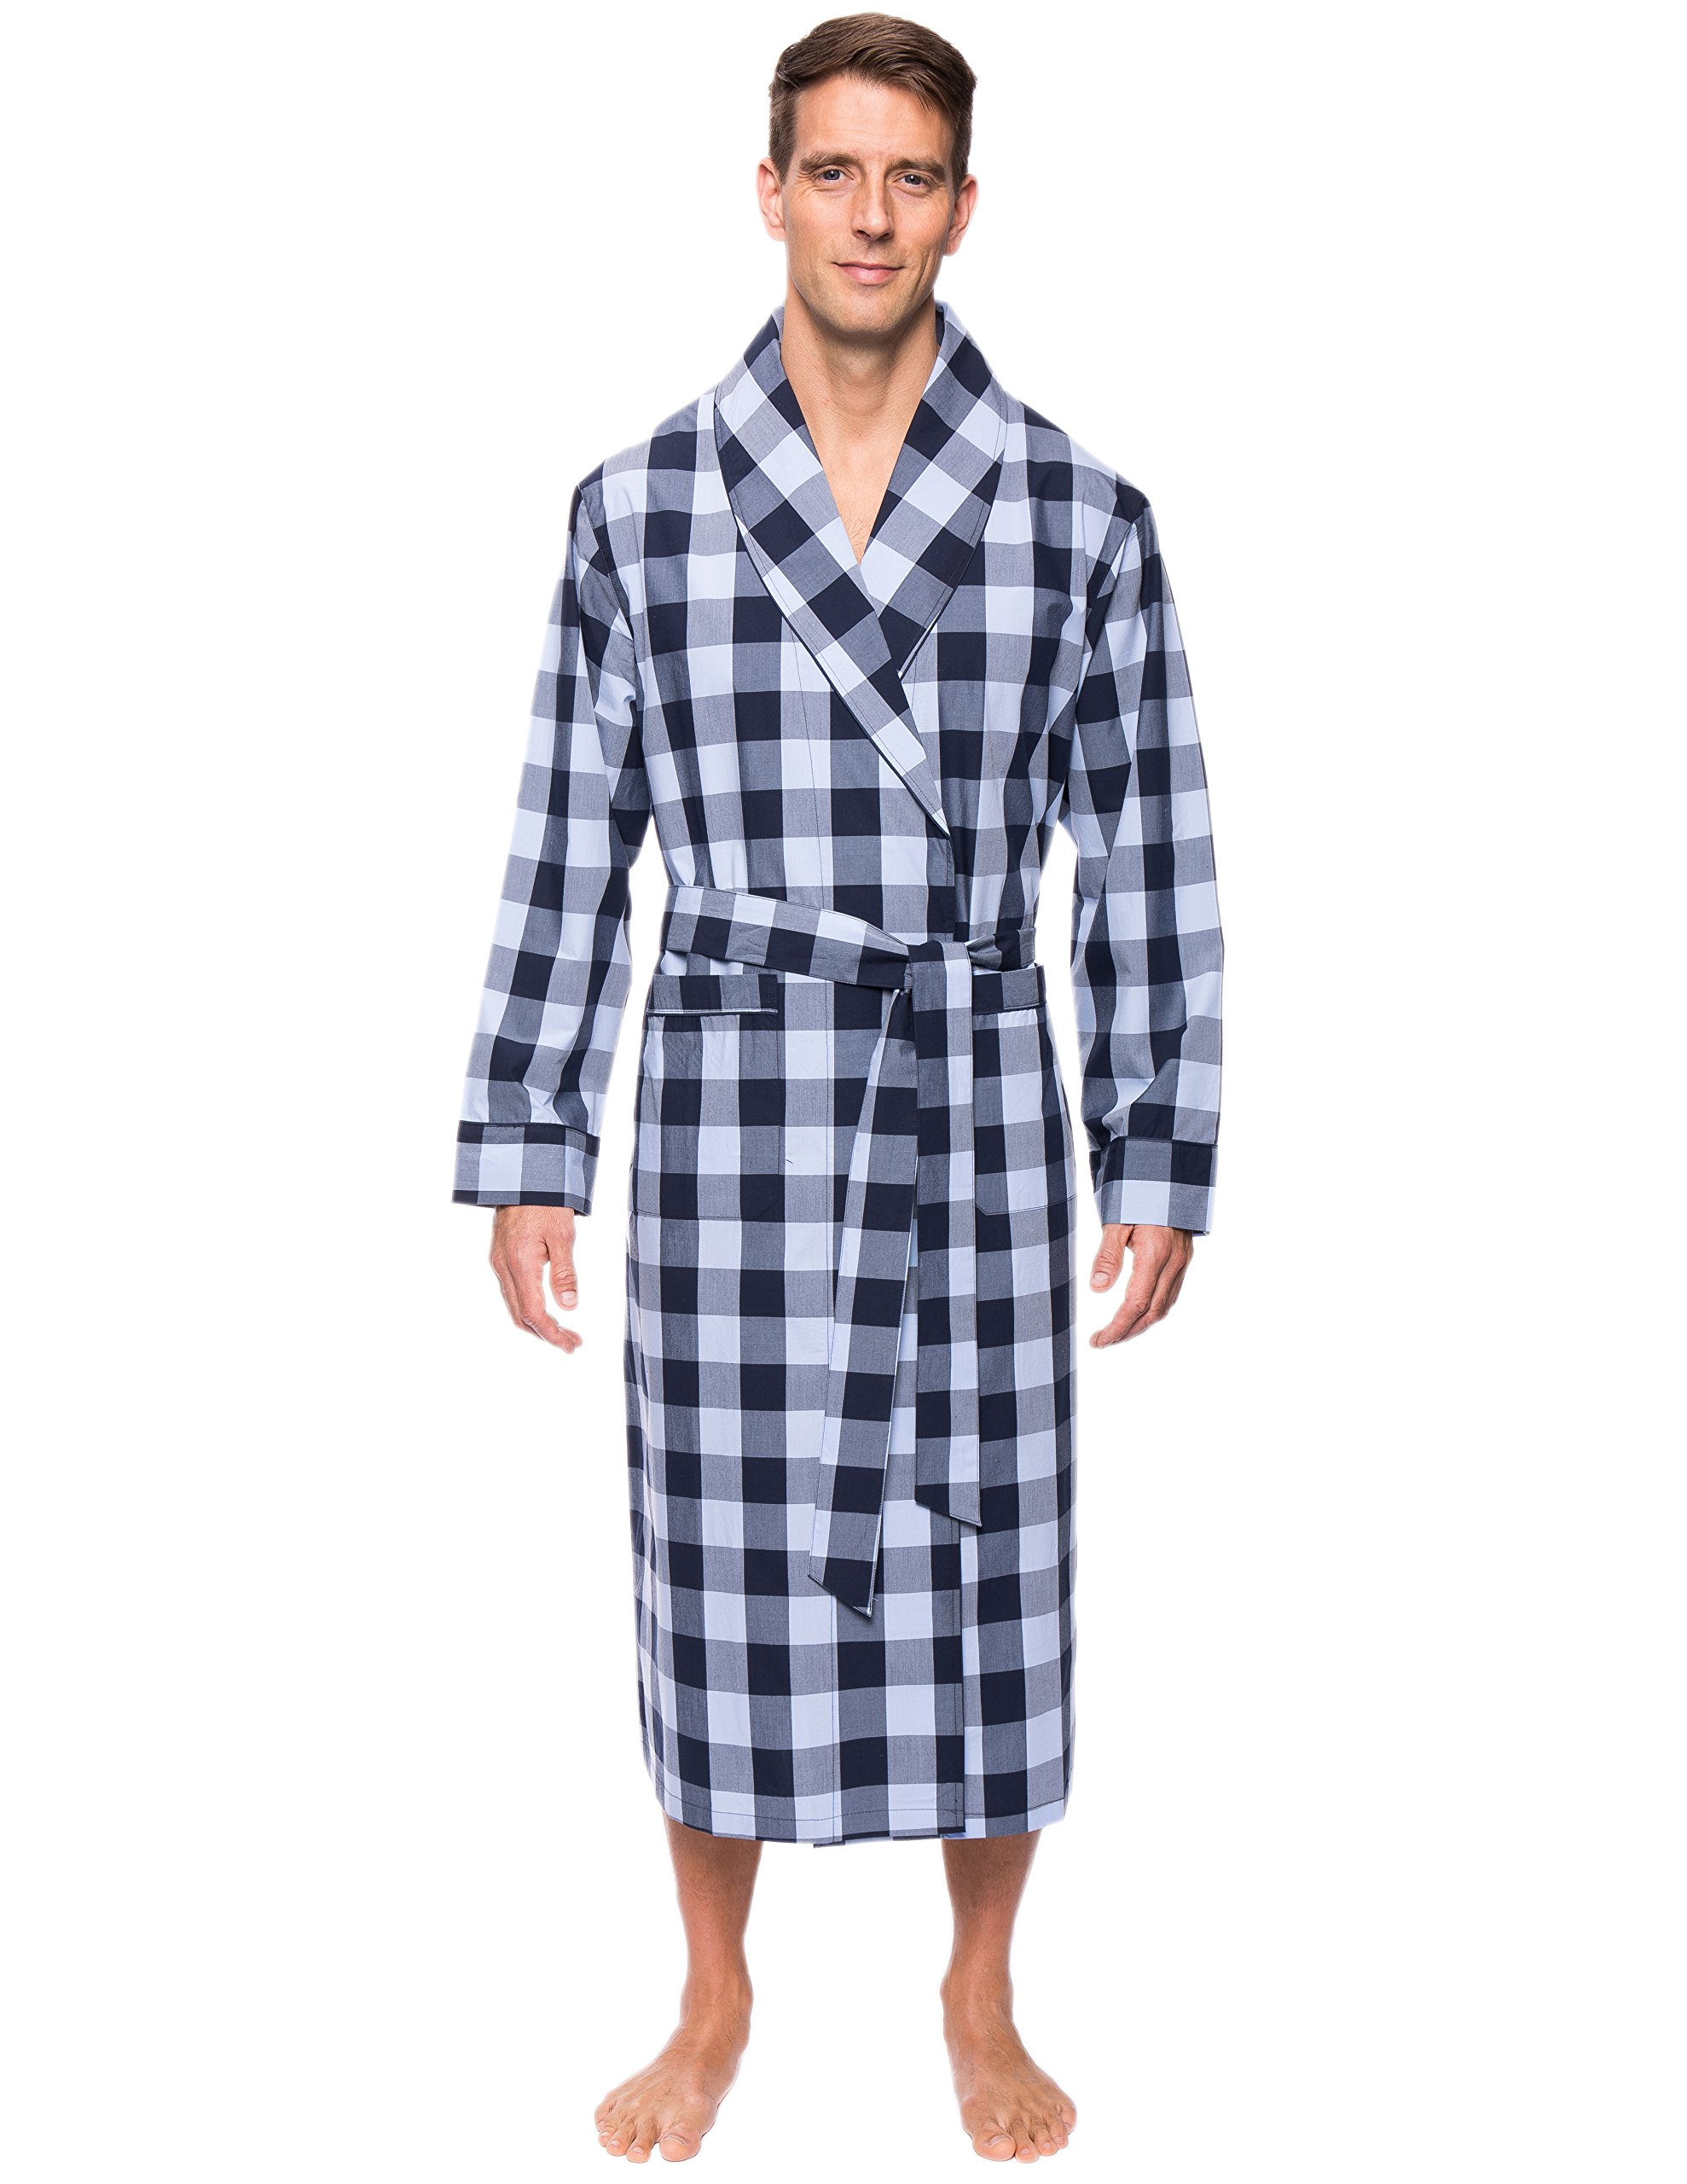 Men's 100% Premium Cotton Robe - Gingham Blue - L/XL